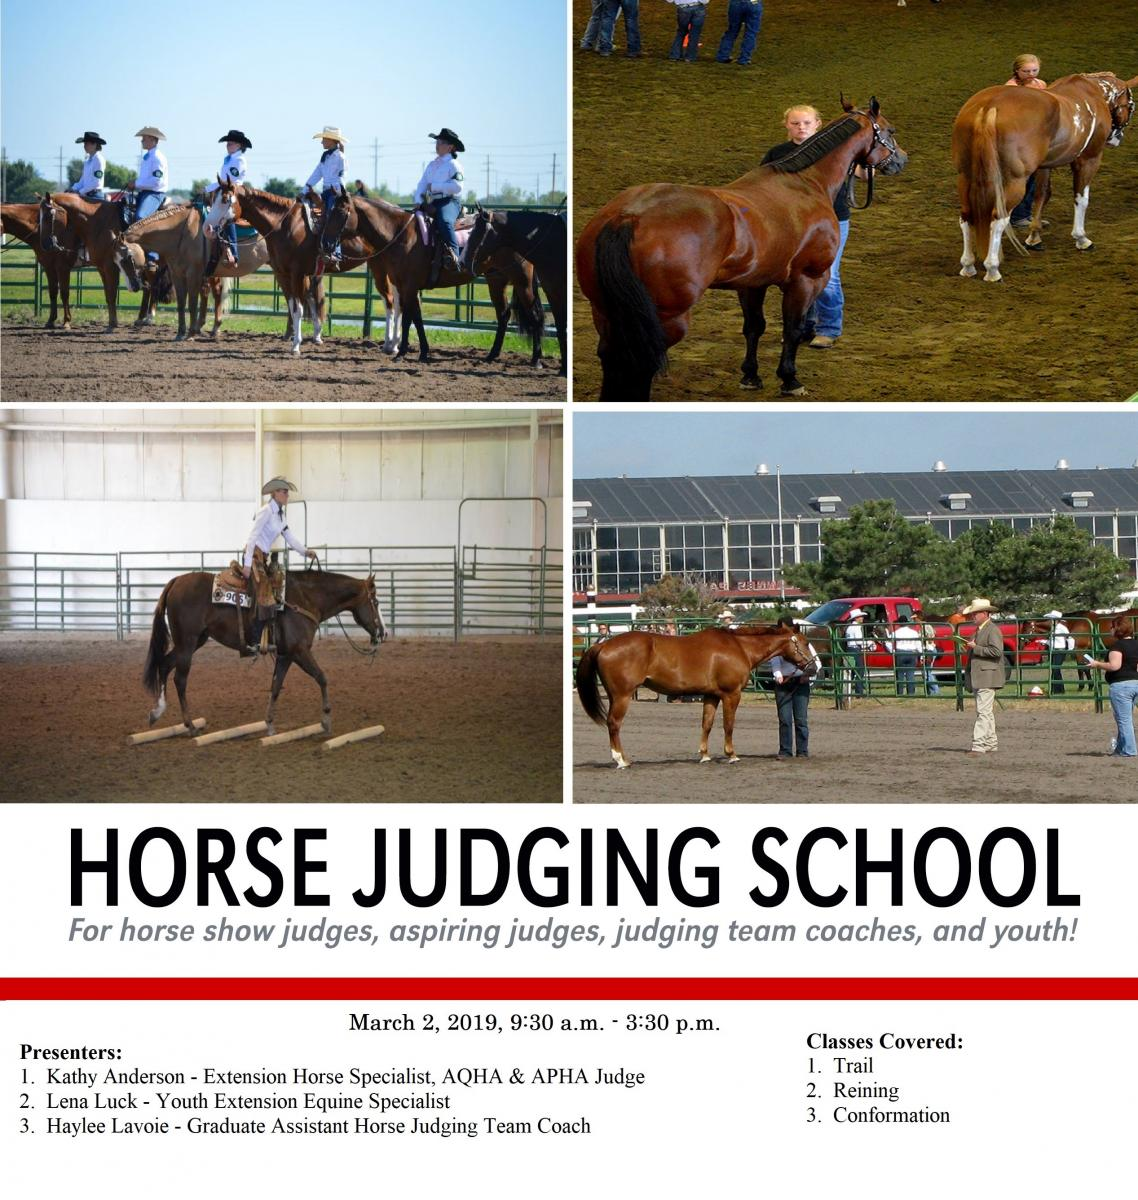 Horse Judging School Flyer